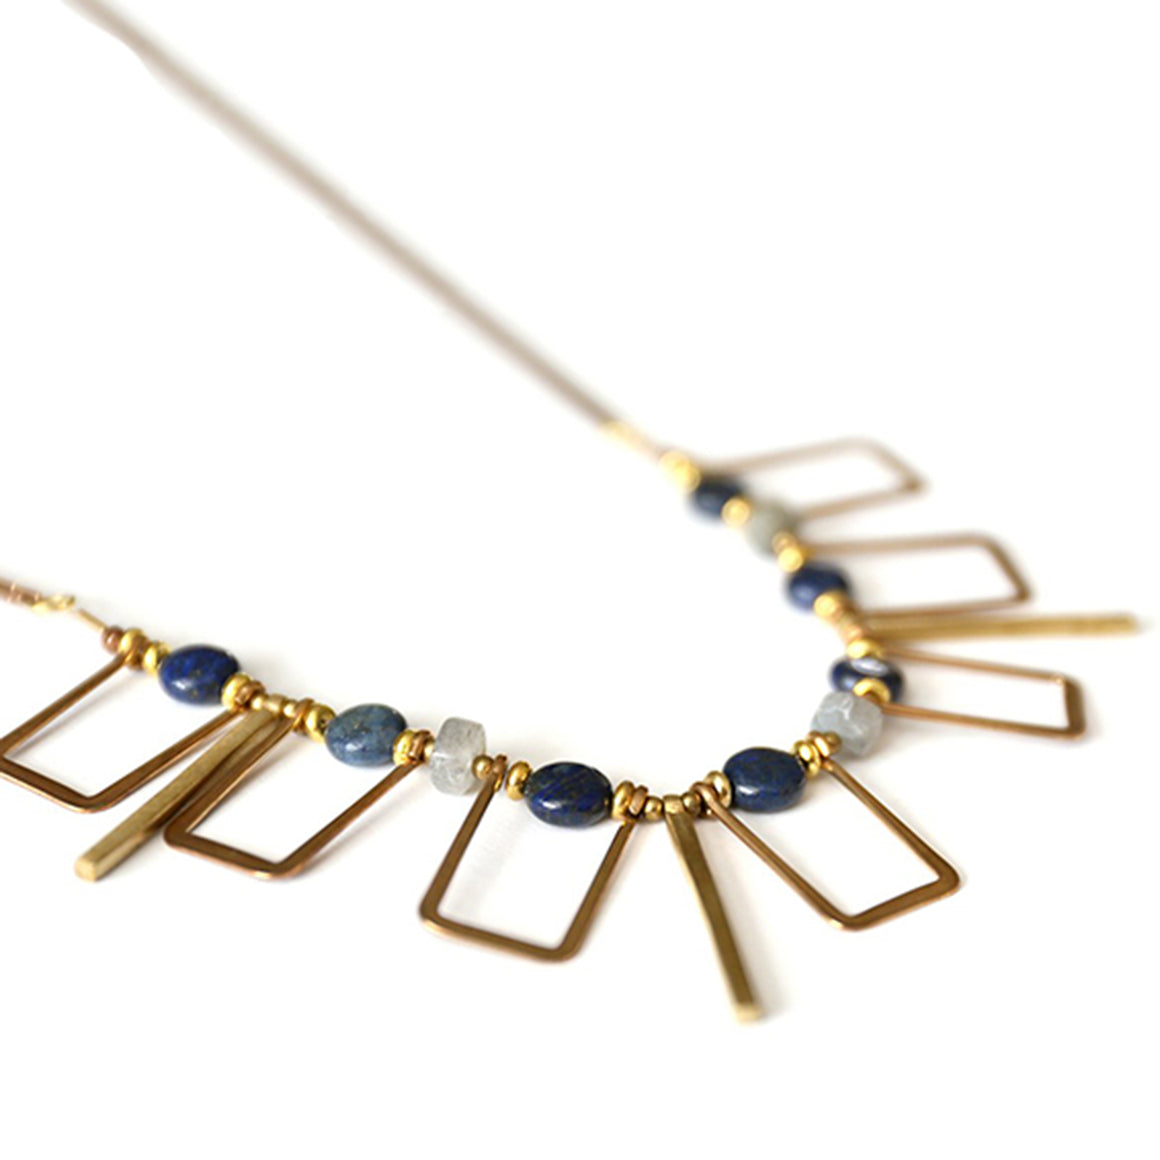 Cayucos Statement Necklace ▬ Lapis Lazuli - Isobell Designs